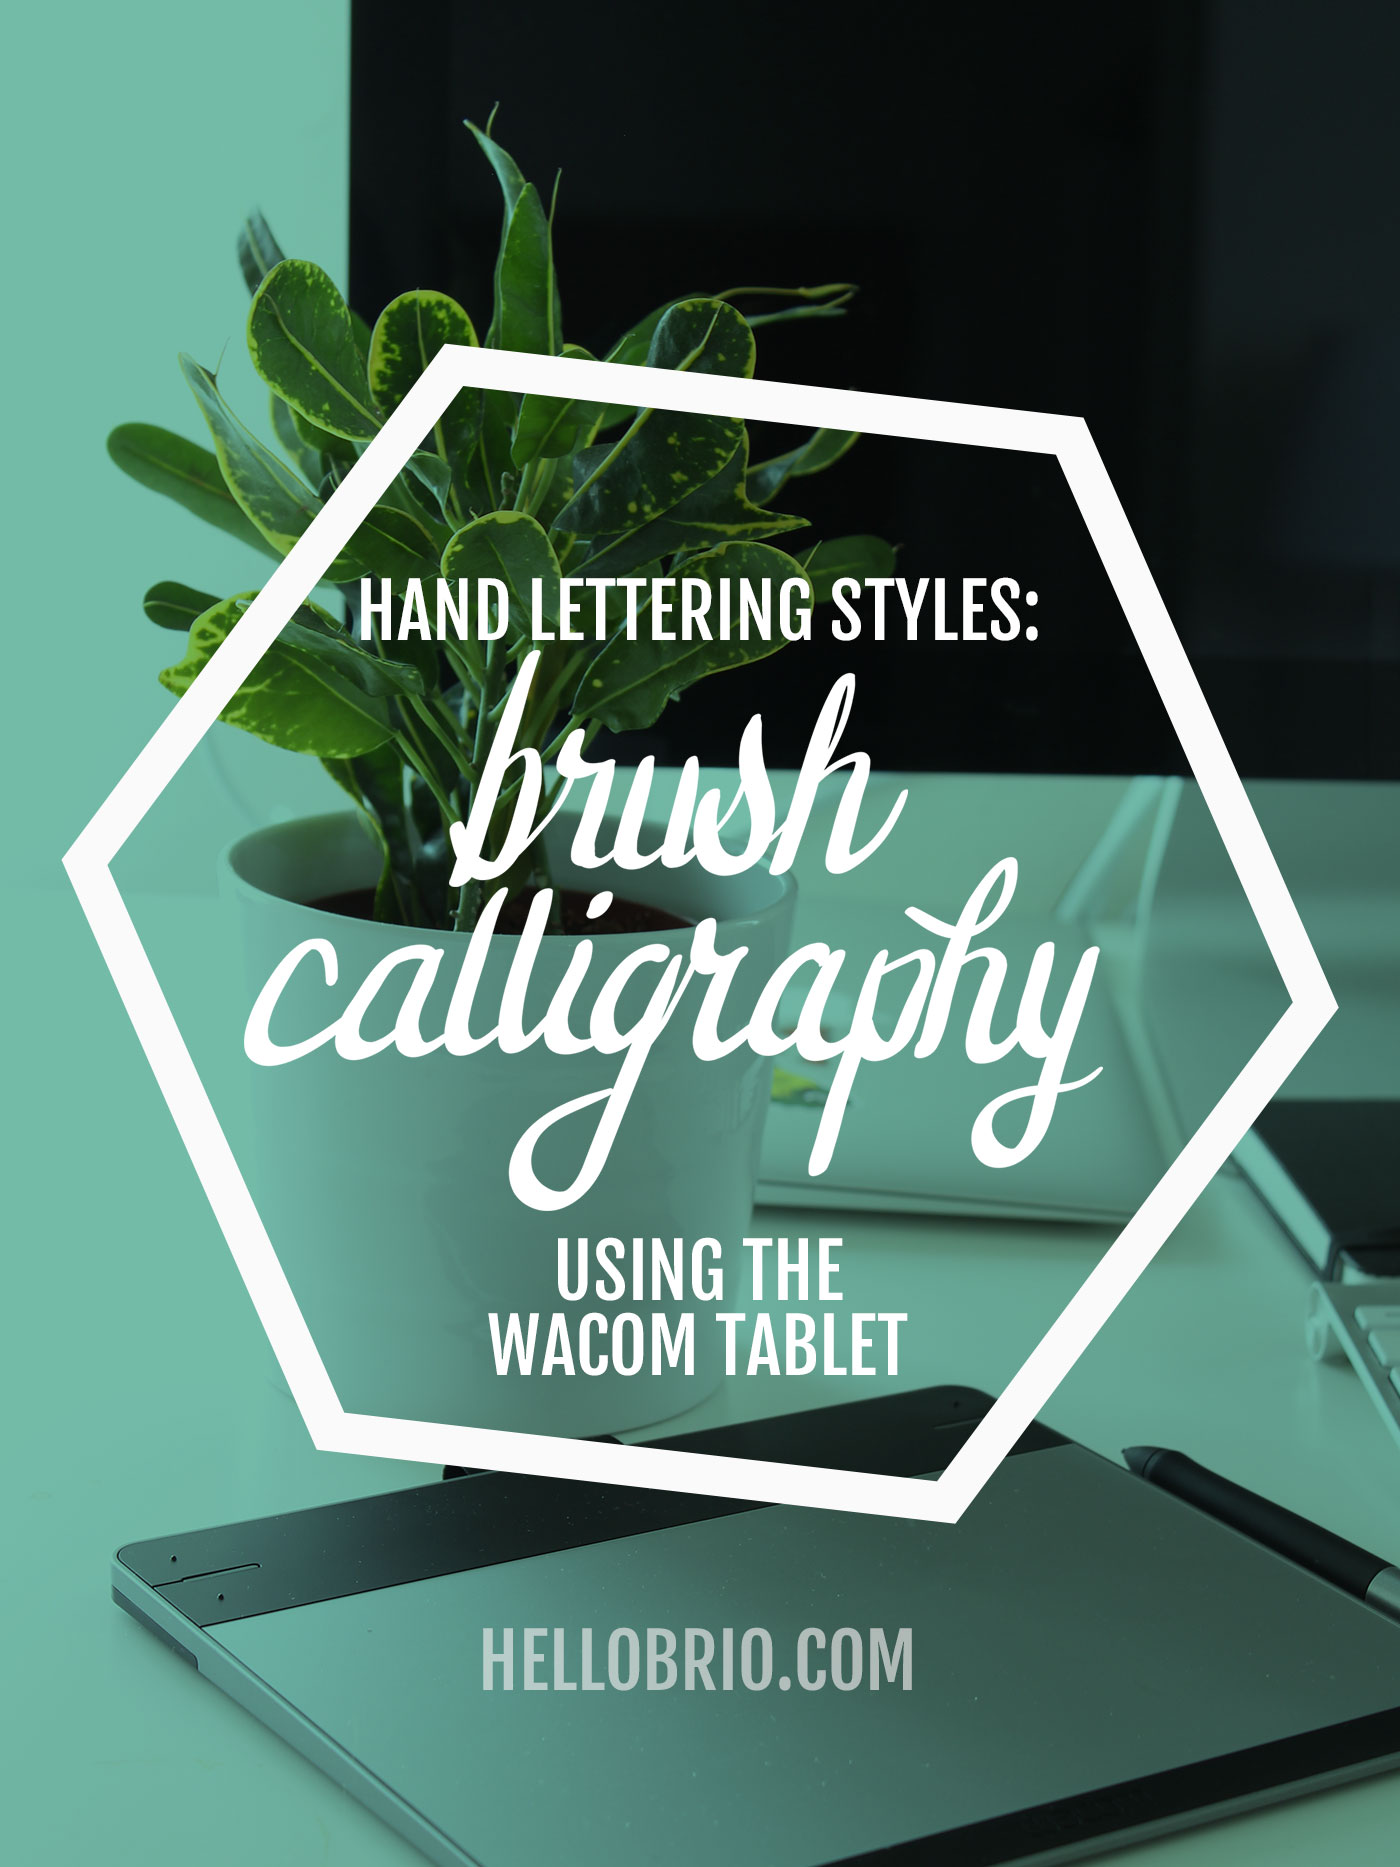 Hand Lettering Styles: Brush Calligraphy using the Wacom Tablet